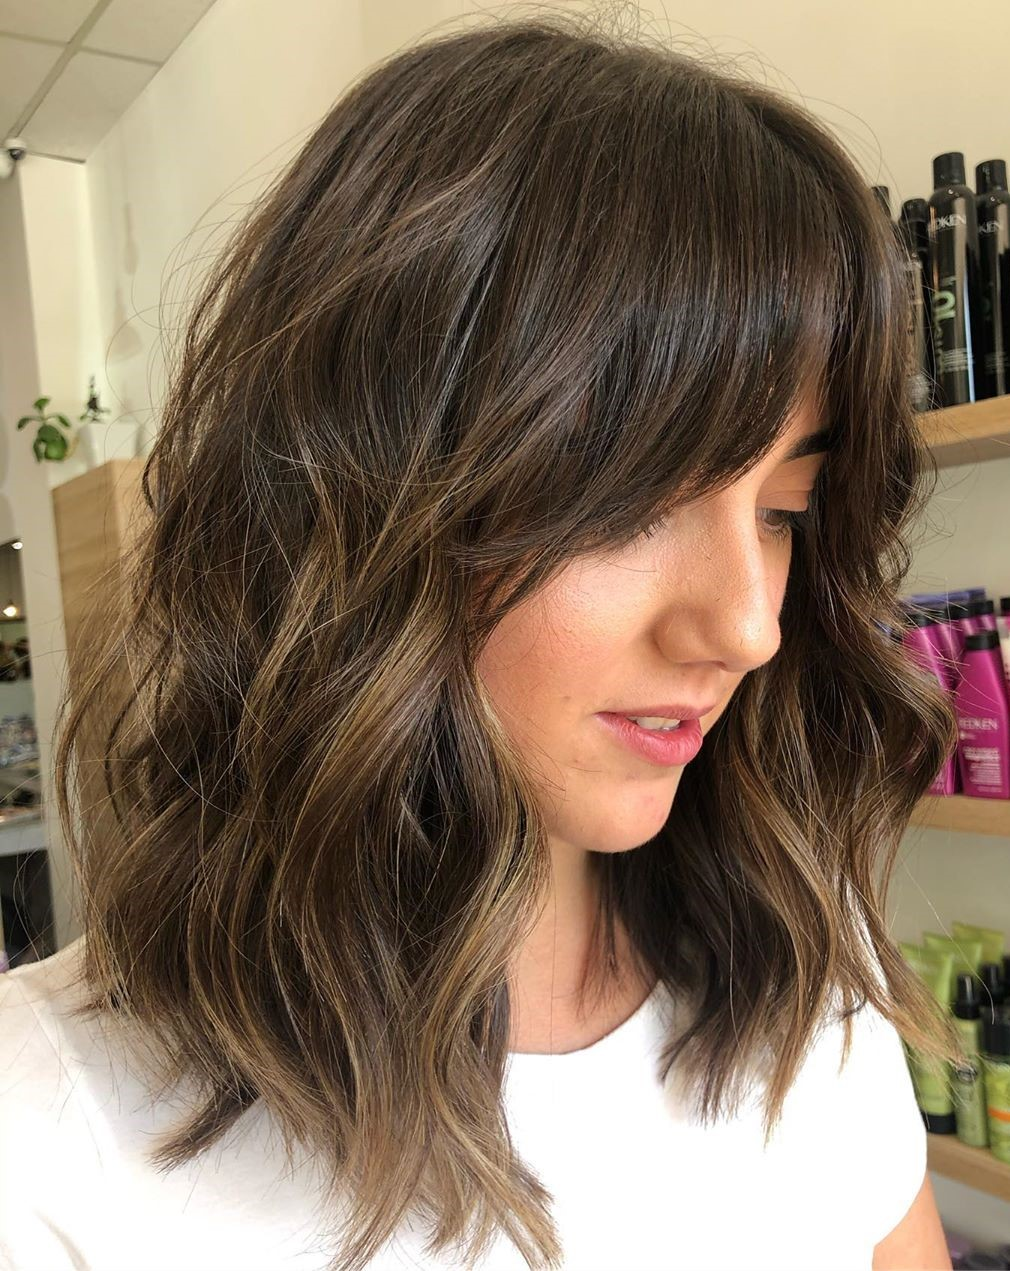 Layered Hairstyles Hairstyles For Women Over 50 105